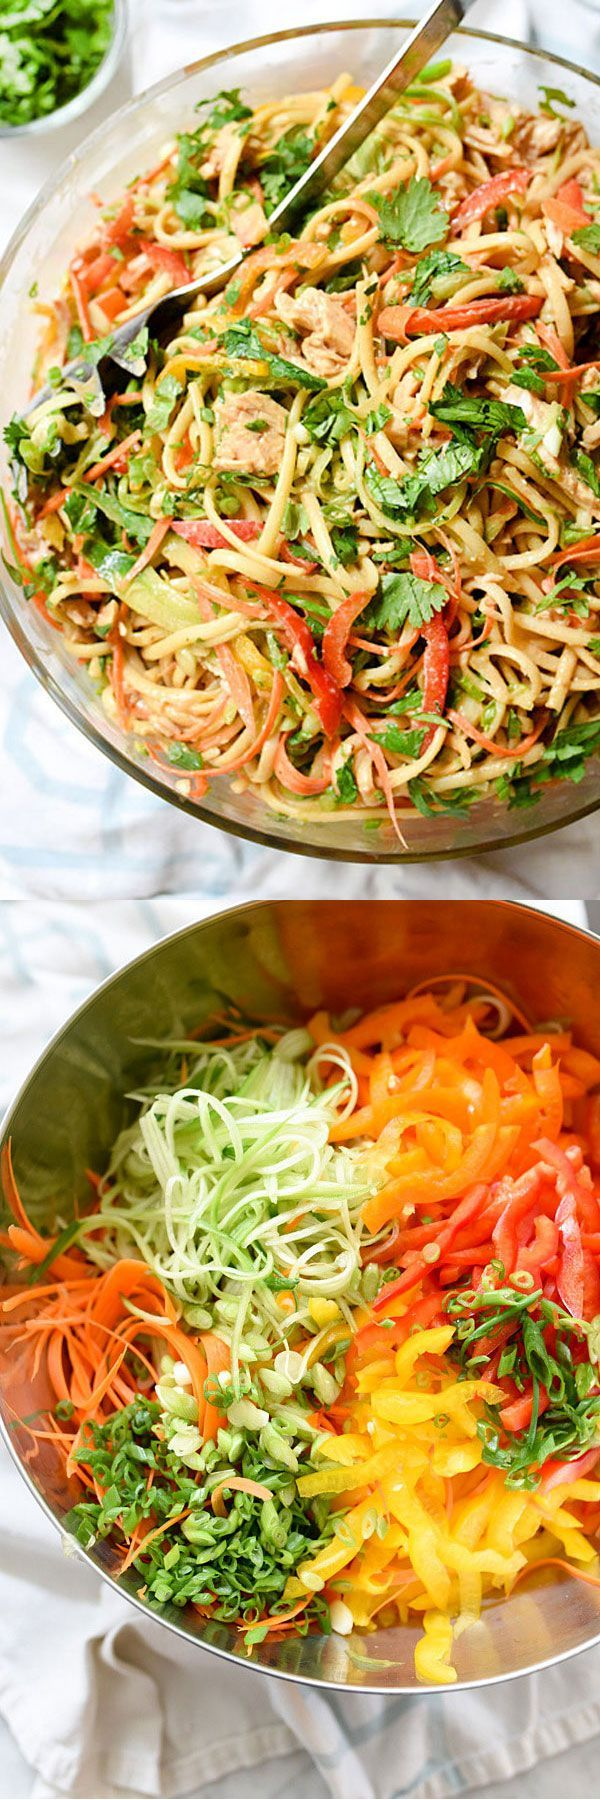 Peanut Noodles With Chicken - This Asian-flavored pasta salad is one of my most popular all-in-one meals.